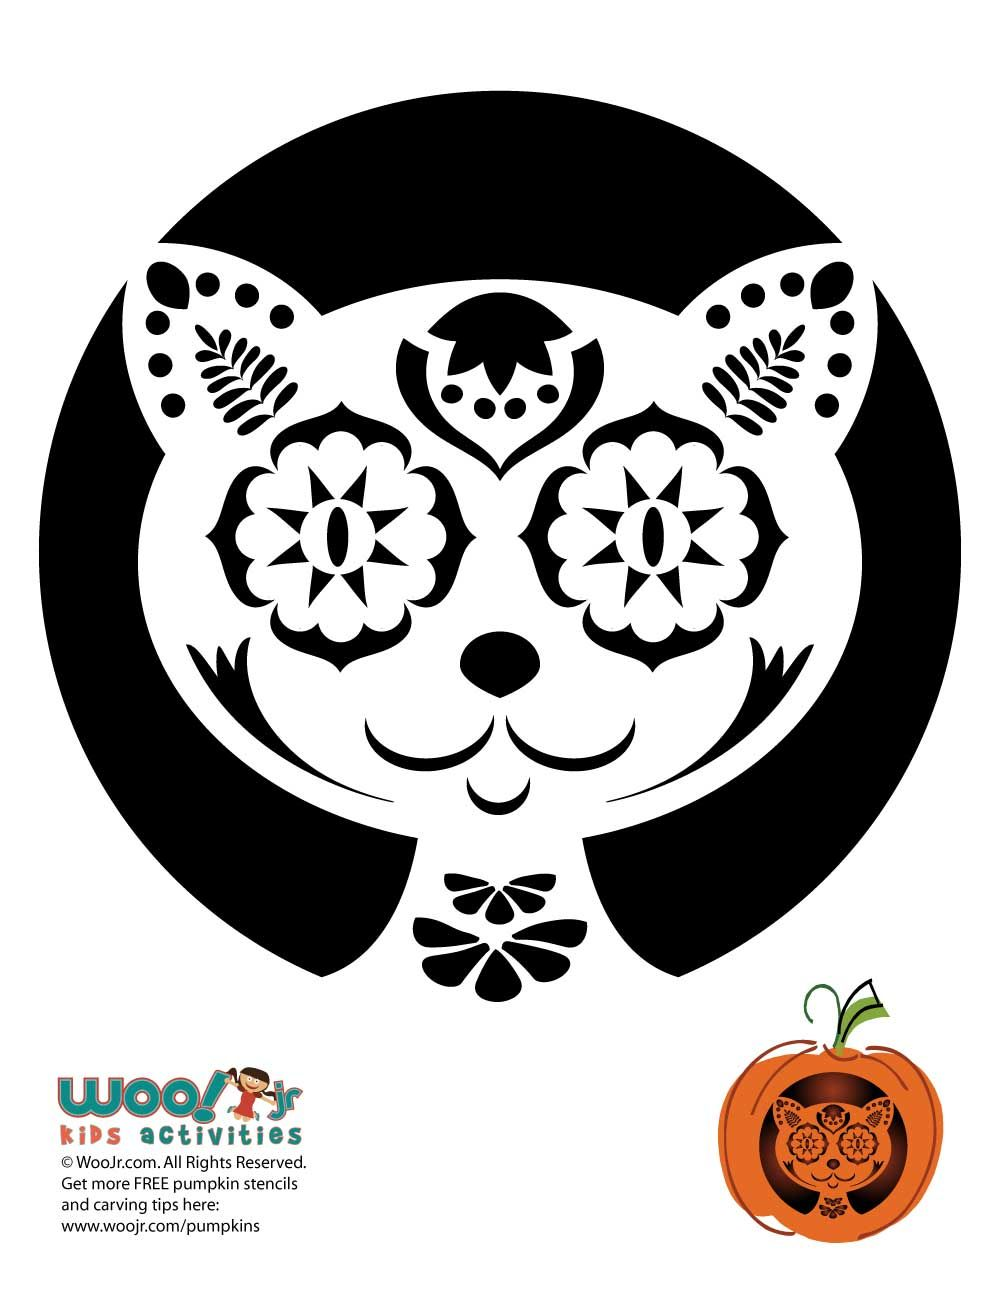 Sugar Skull Template Day of the Dead Pumpkin Carving Stencils Halloween